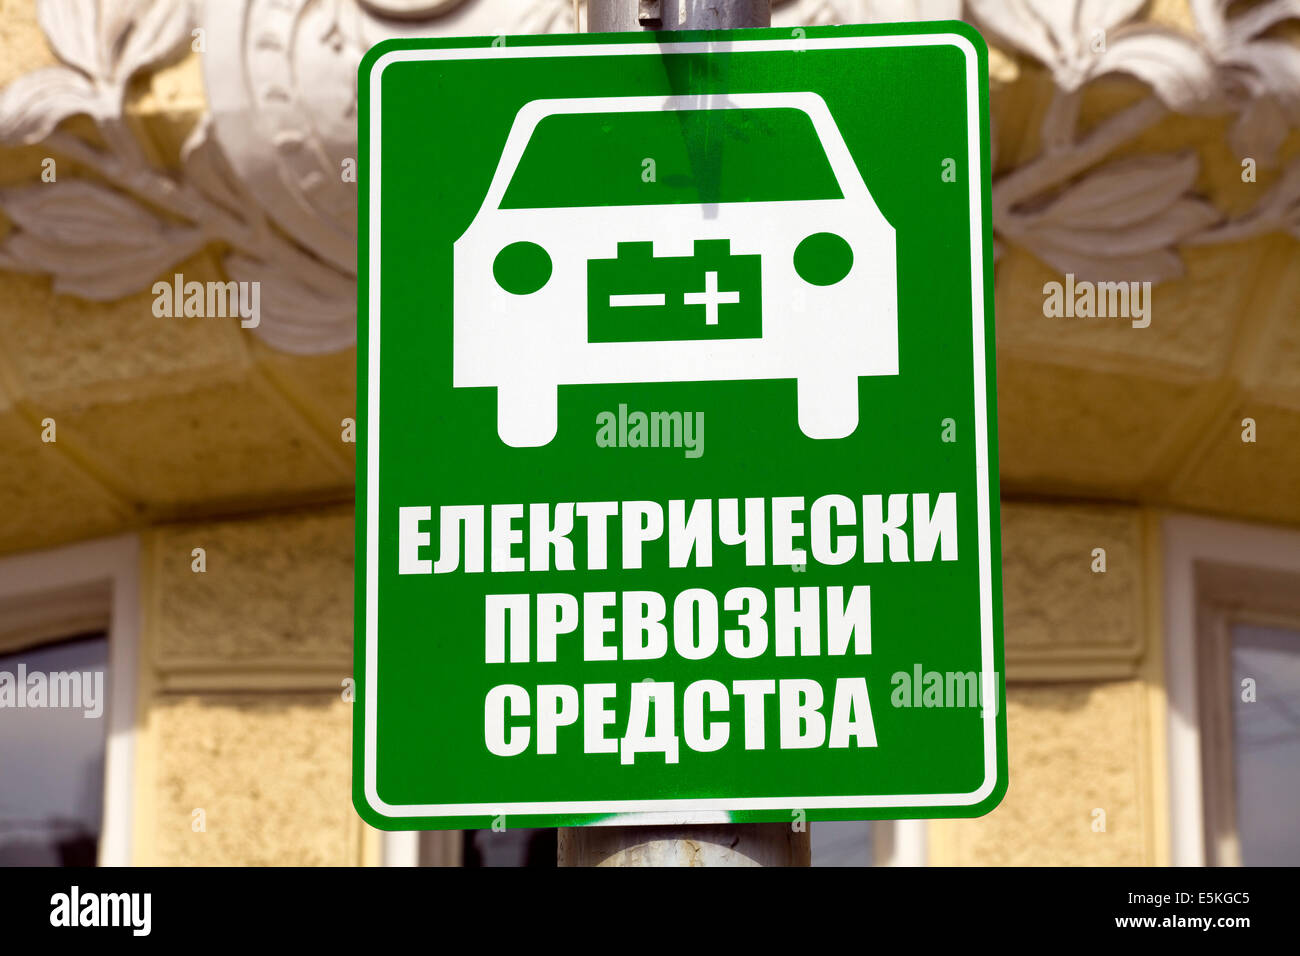 EV Charger Electric Vehicle charging point or station in Sofia, Bulgaria - Stock Image